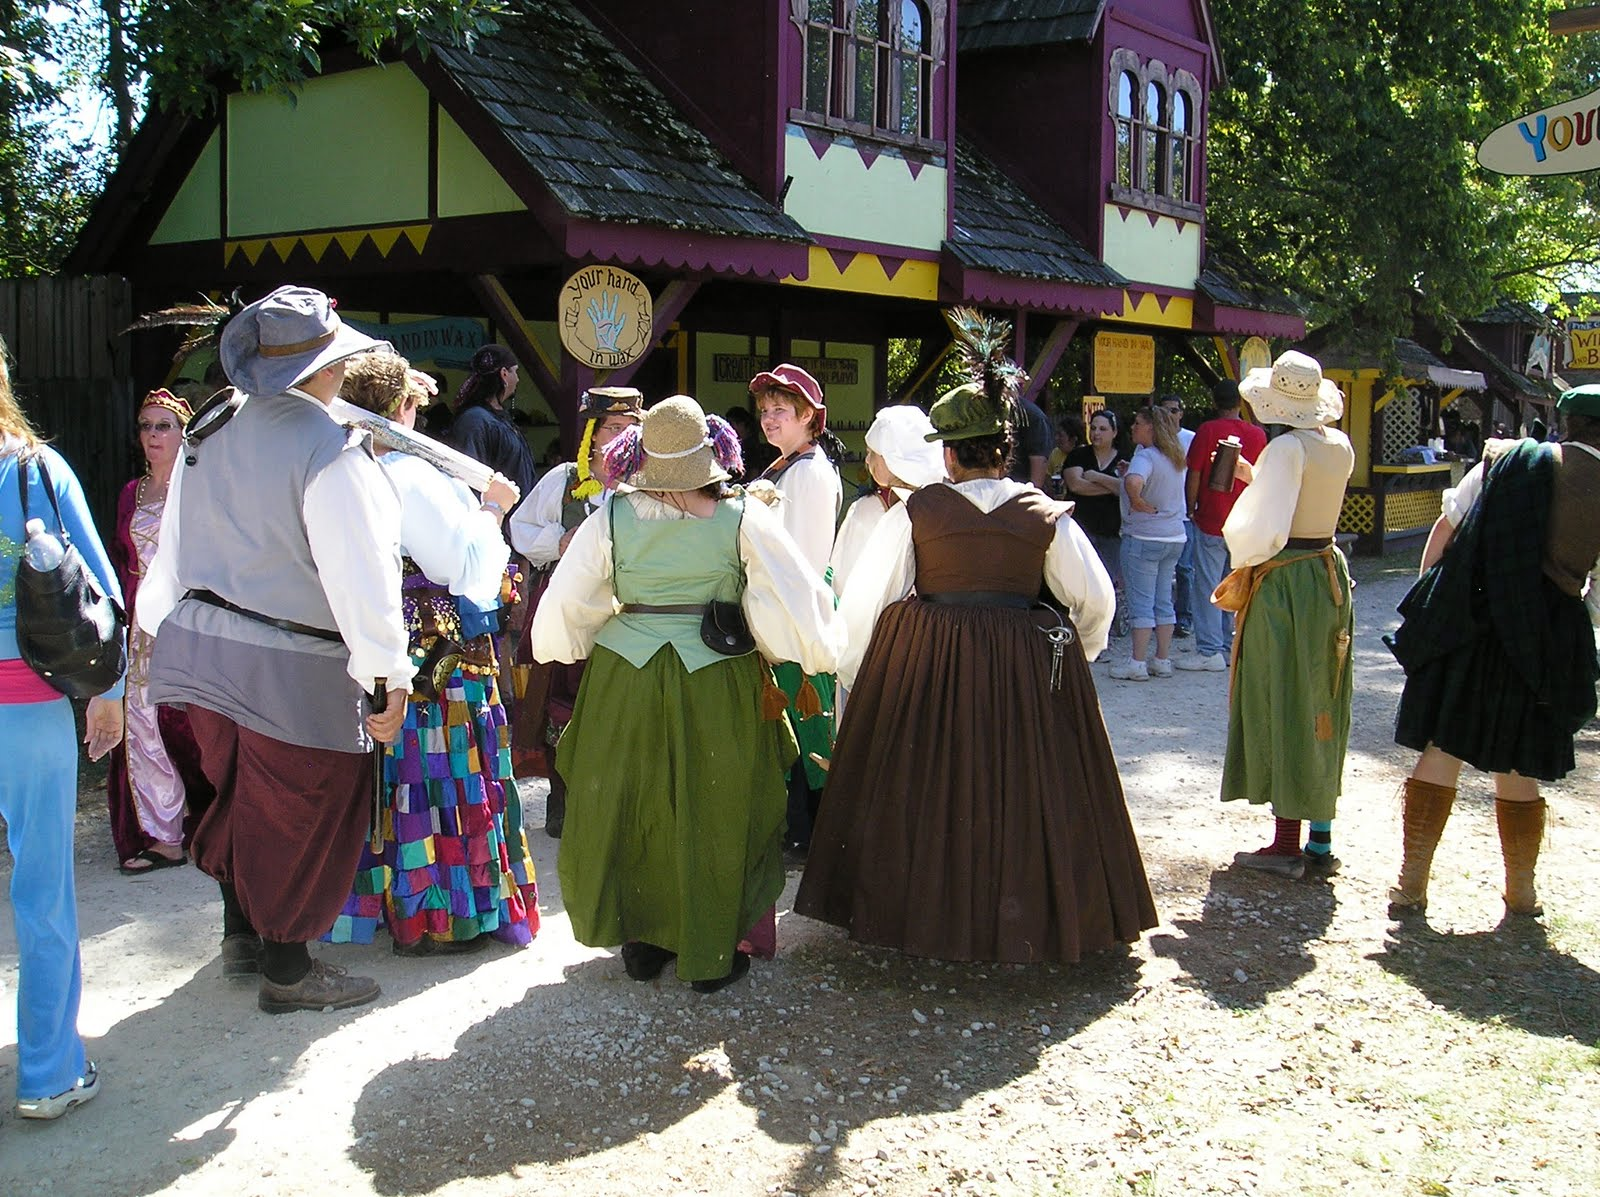 Ohio Renaissance Festival in Harveysburg: Ohio's premiere family event features 11 stages of continuous entertainment, seven food and beverage buildings, and more than arts and crafts shops.